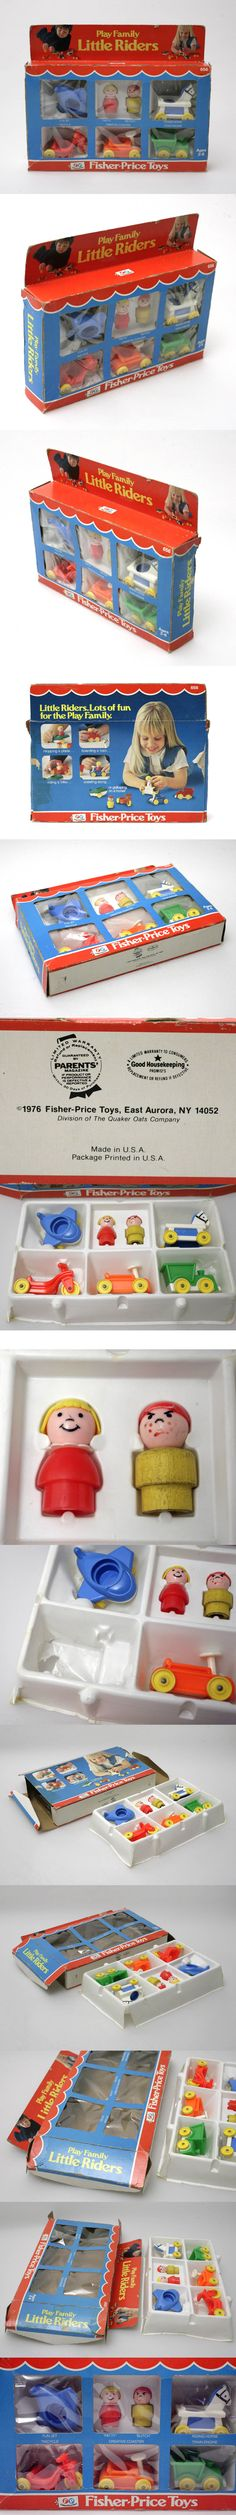 Vintage 1970's FISHER PRICE TOYS set 656 in box NOW FOR SALE on EBAY.DE